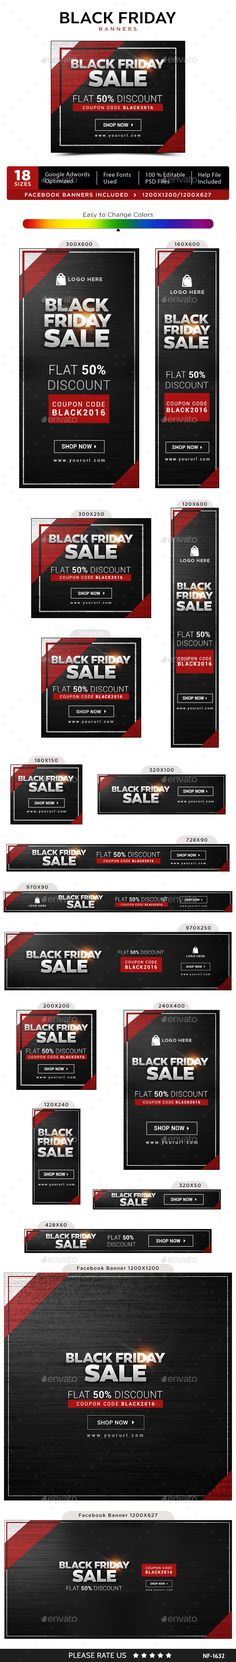 Black Friday Banners Design Template - Banners & Ads Web Elements Banners Ads Design Template PSD. Download here: https://graphicriver.net/item/black-friday-banners/18901623?ref=yinkira